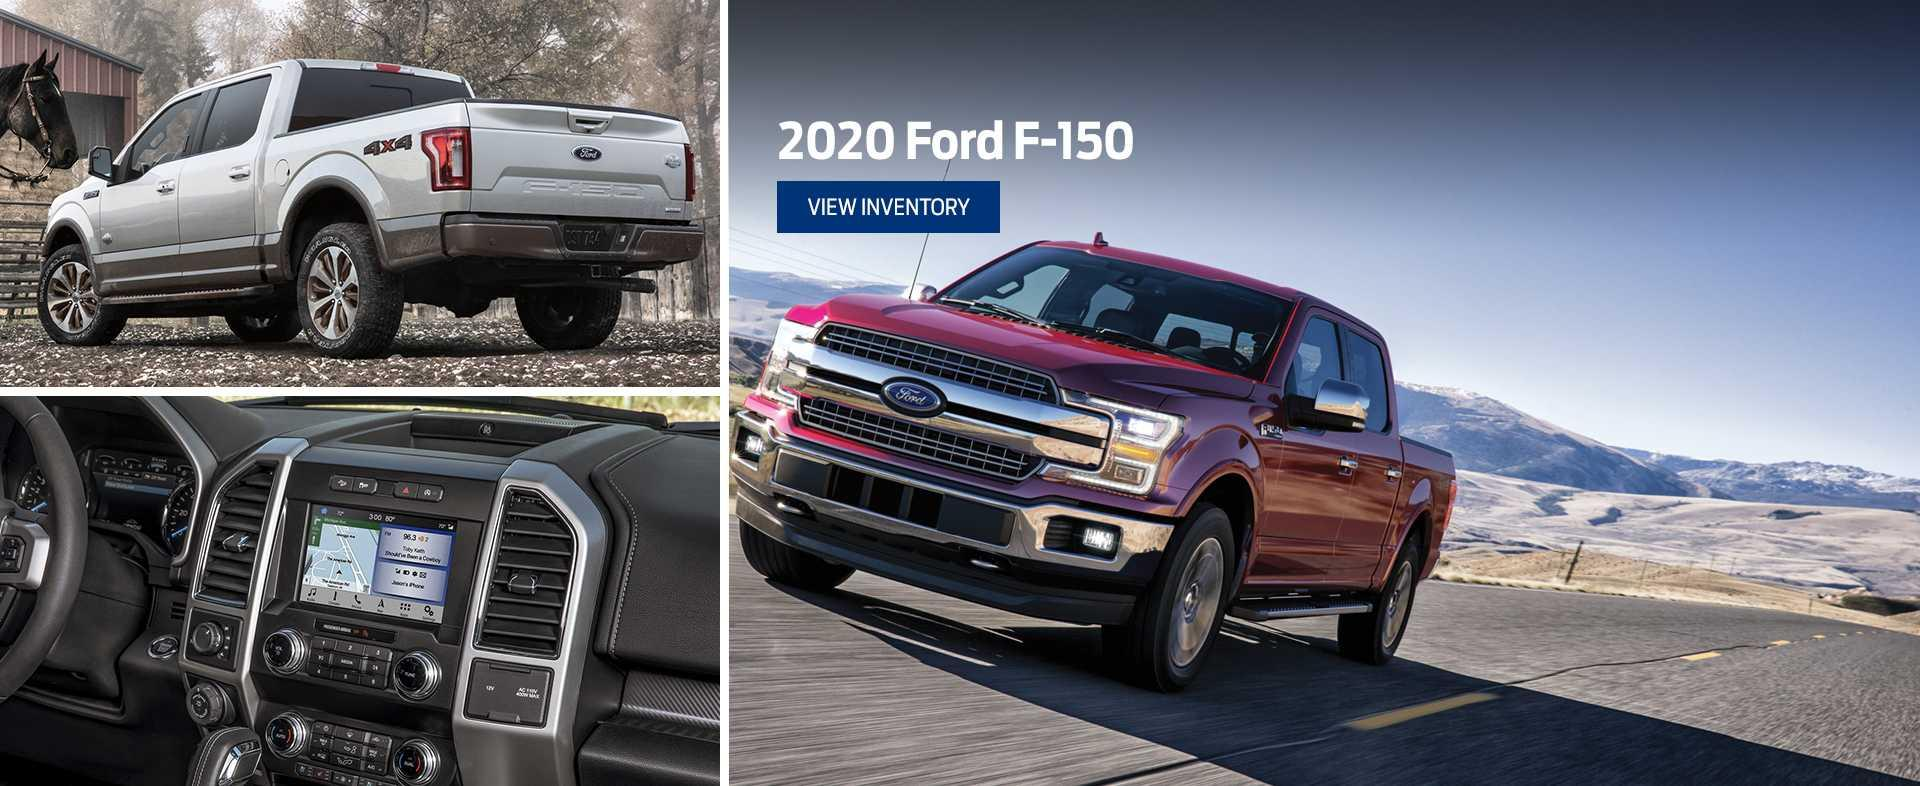 Ford & Lincoln Home 2020 Ford F-150